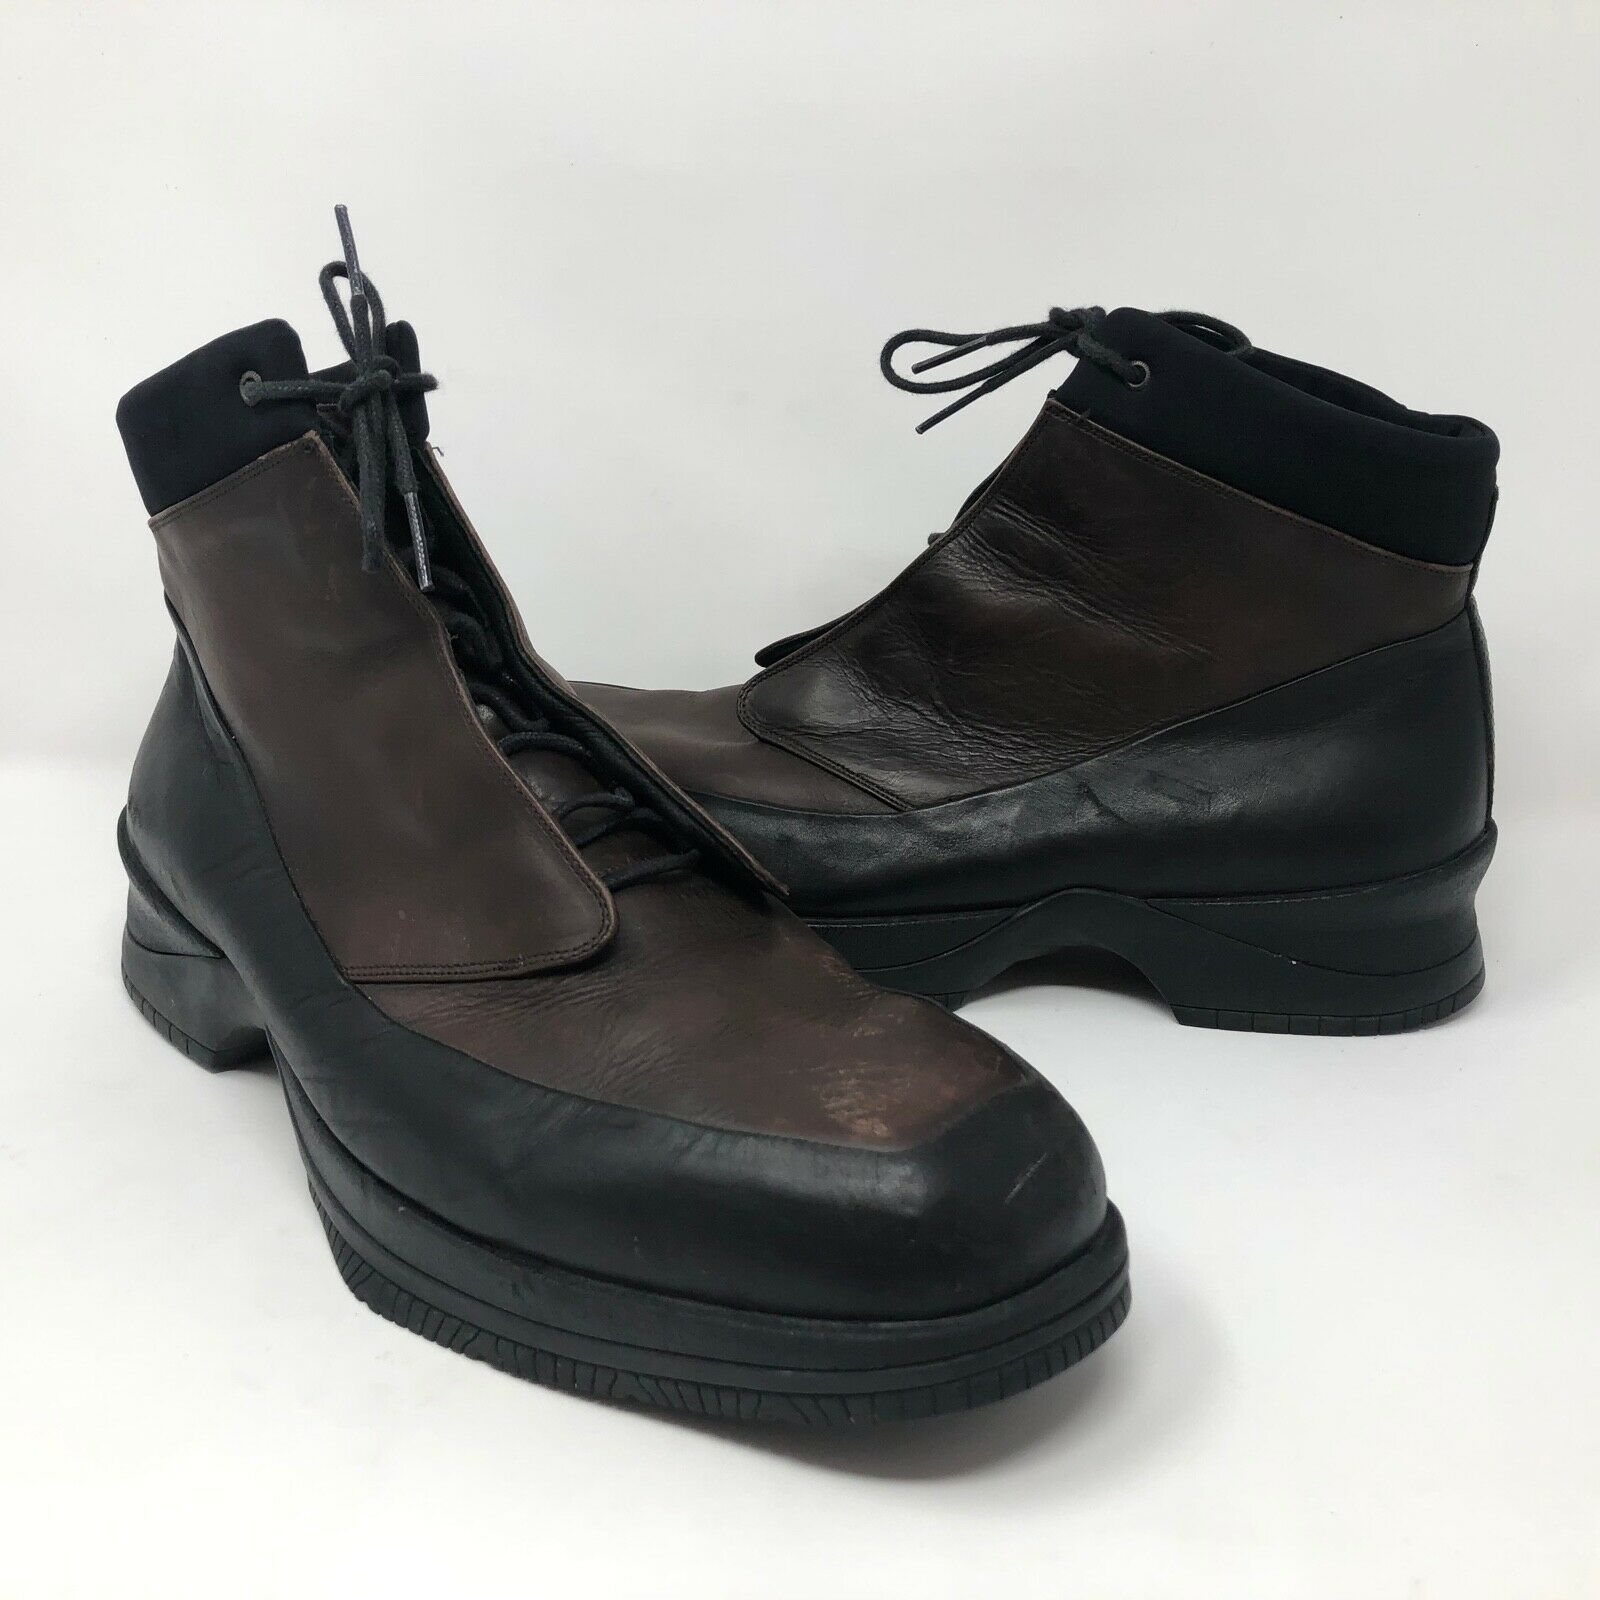 VTG Air Jordan Mens Stivale Brown High Top shoes Boots Sz 10  Made Two Tone